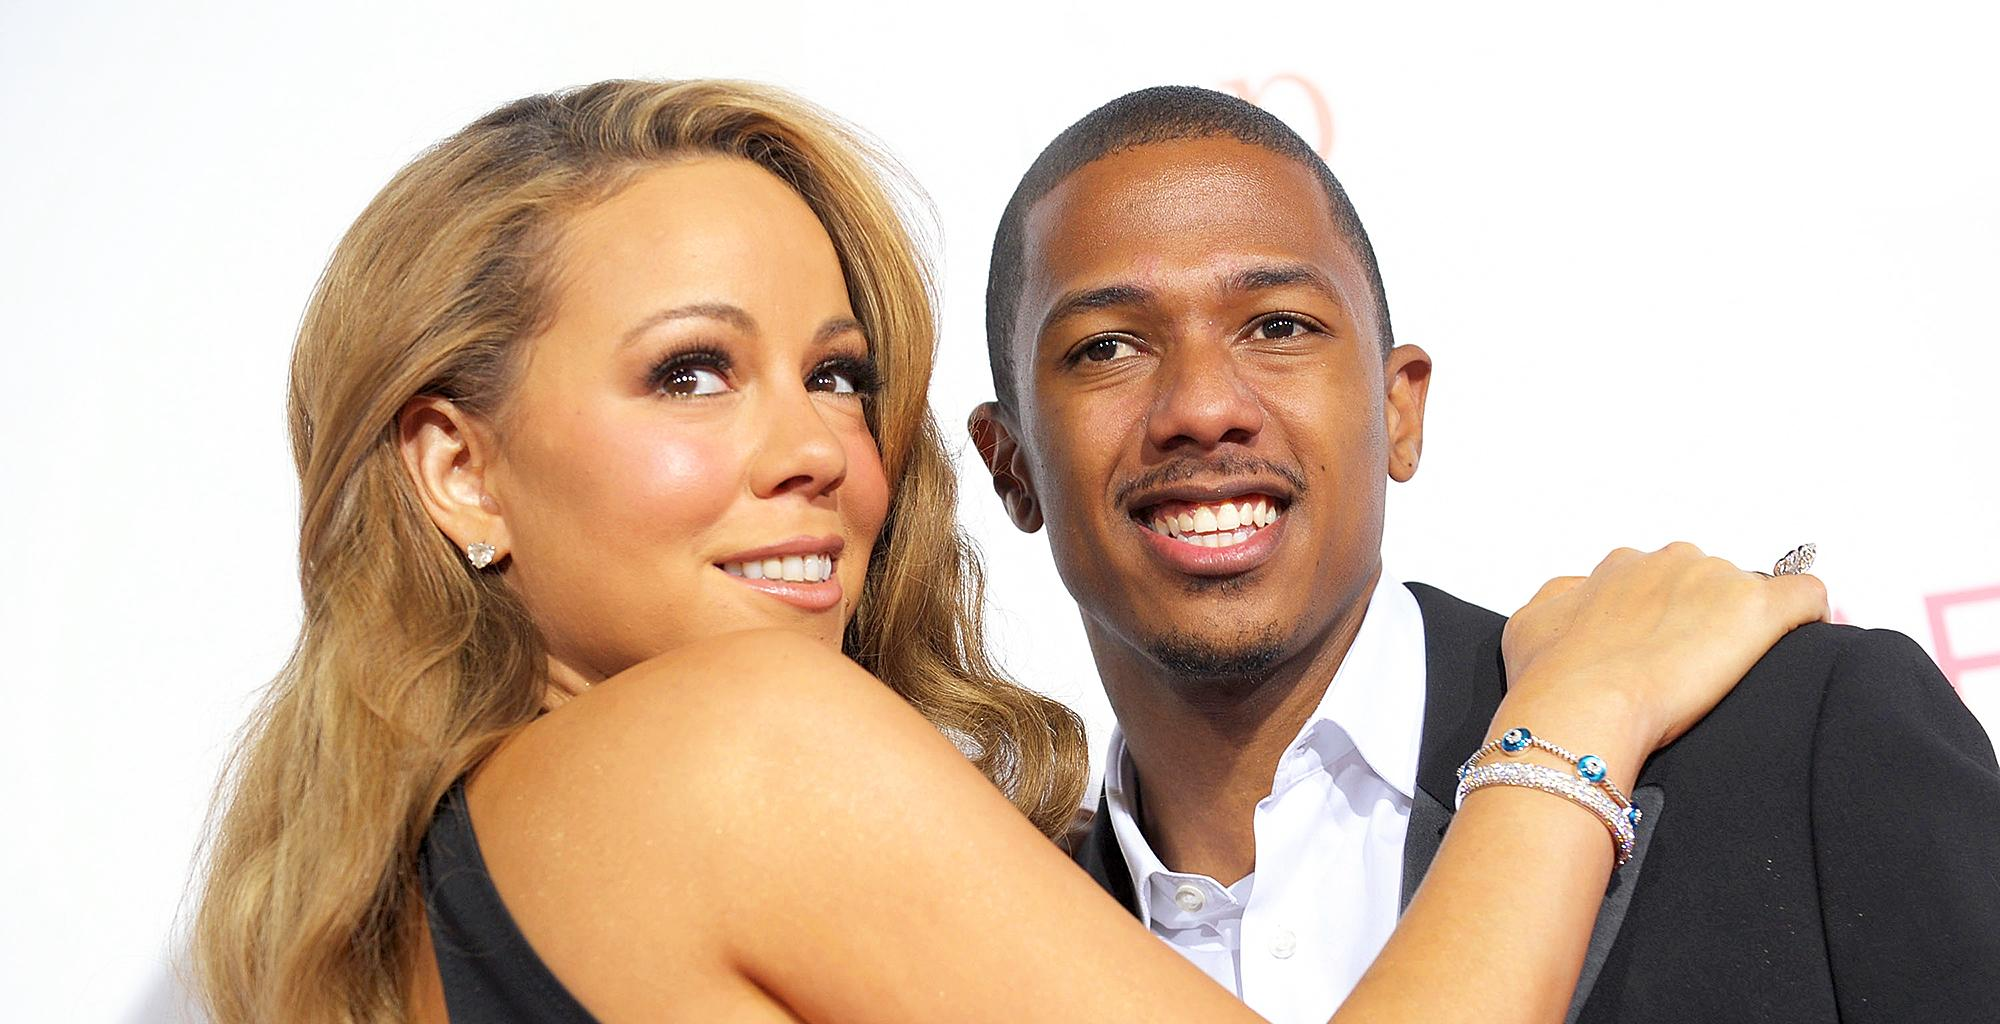 Nick Cannon Gushes Over Mariah Carey And Their Marriage After Admitting He'd Marry Her Again - 'Nothing Could Top That'